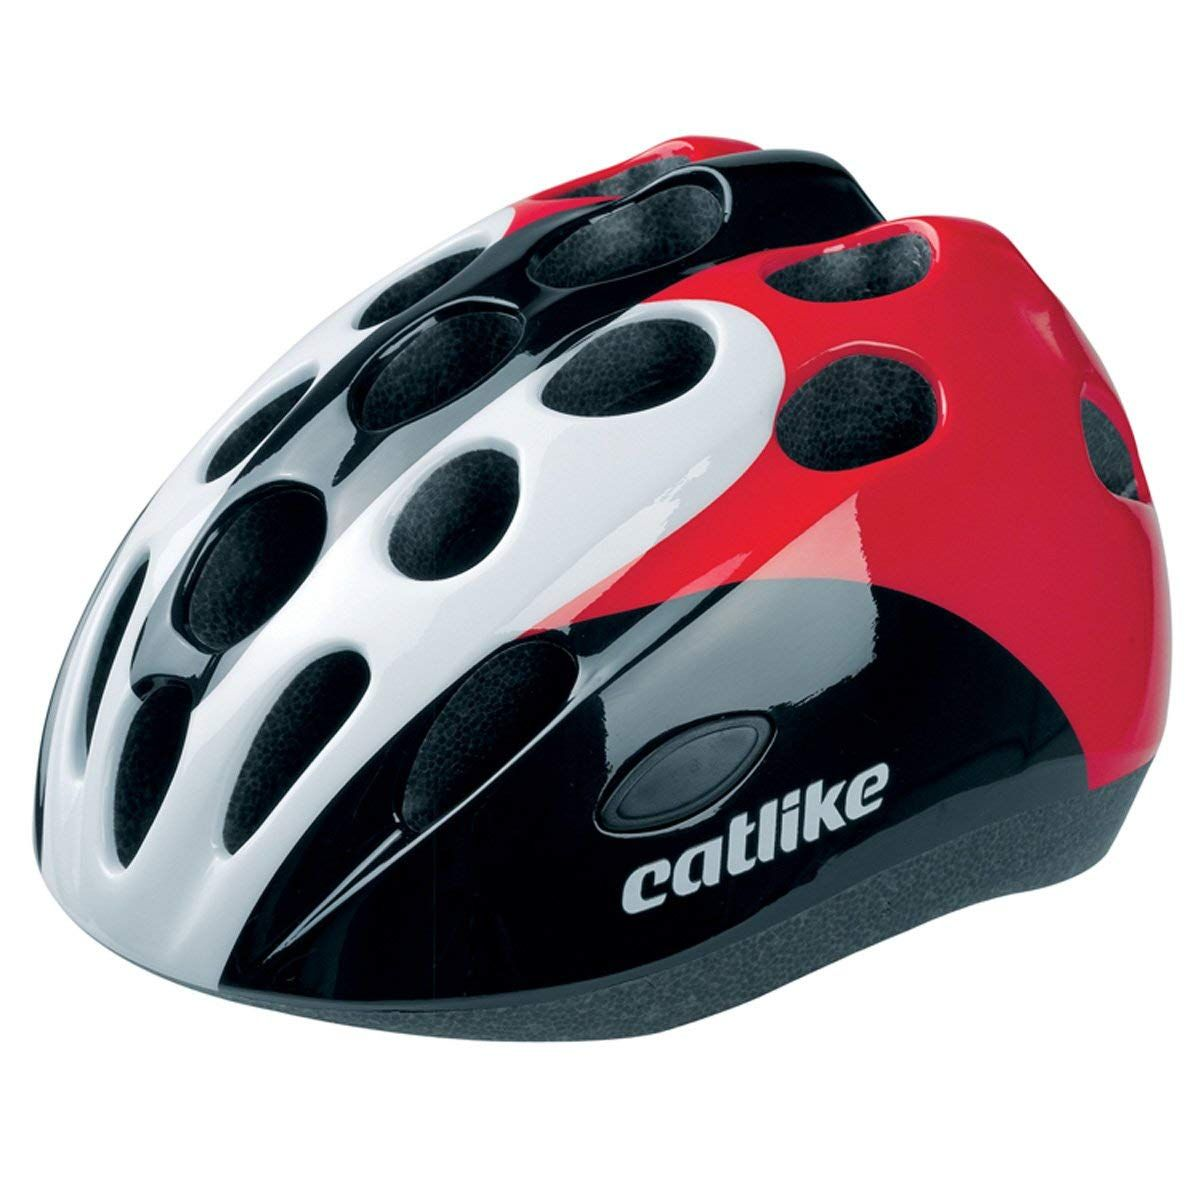 Catlike Kitten Childrens Youth City Cycling Helmet See The Photo Link Even More Details This Is An Affiliate Link Cy Bike Helmet Cycling Helmet Helmet